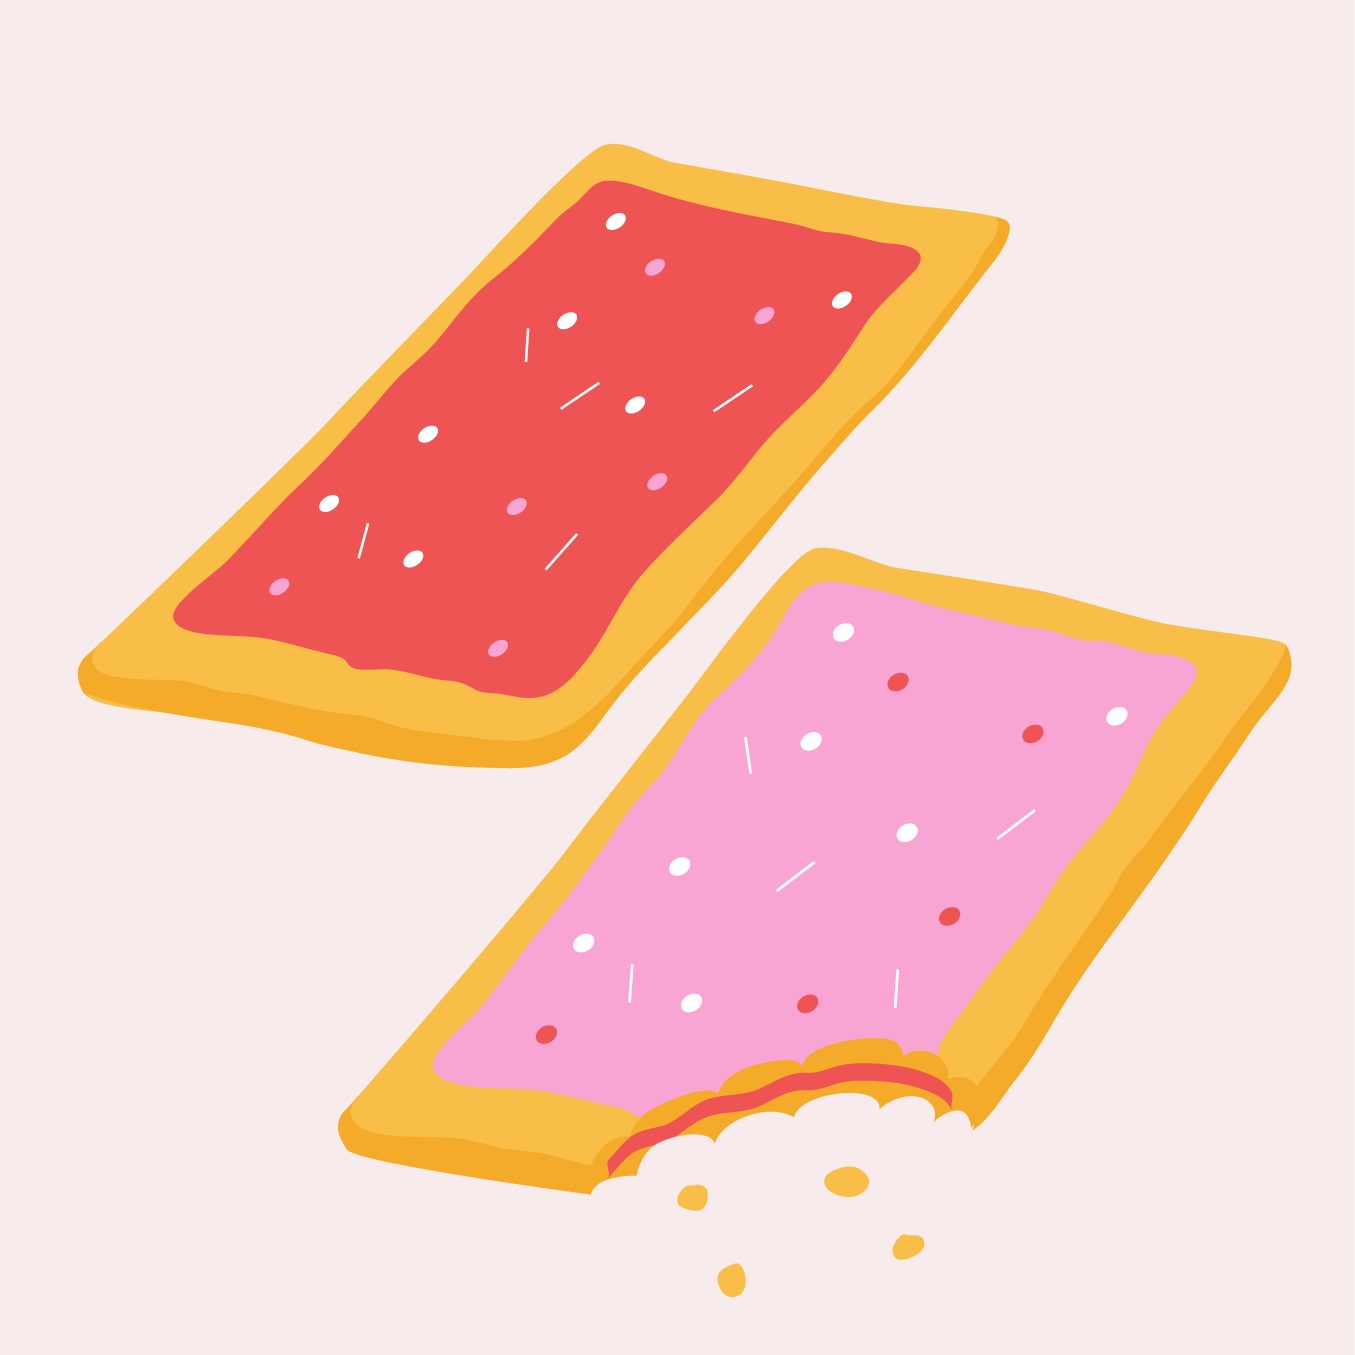 Drawing of two pop tarts (Strawberry and Wild Berry flavors)